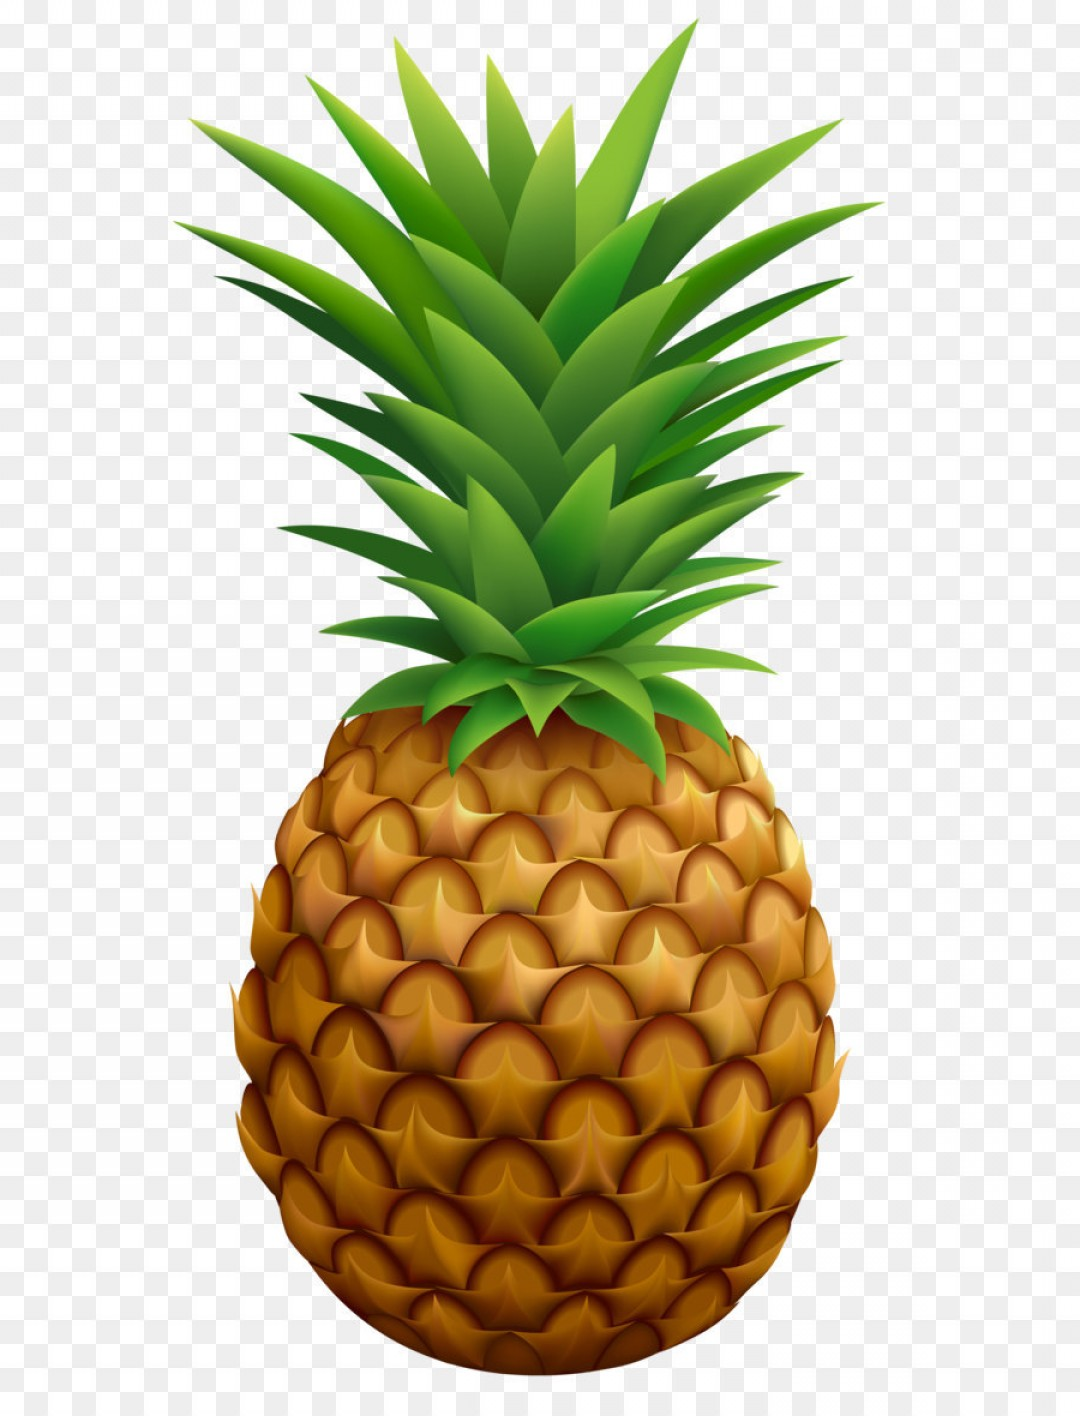 Cartoon Pineapple Png Free Cartoon Pineapple Png Transparent Images 29289 Pngio